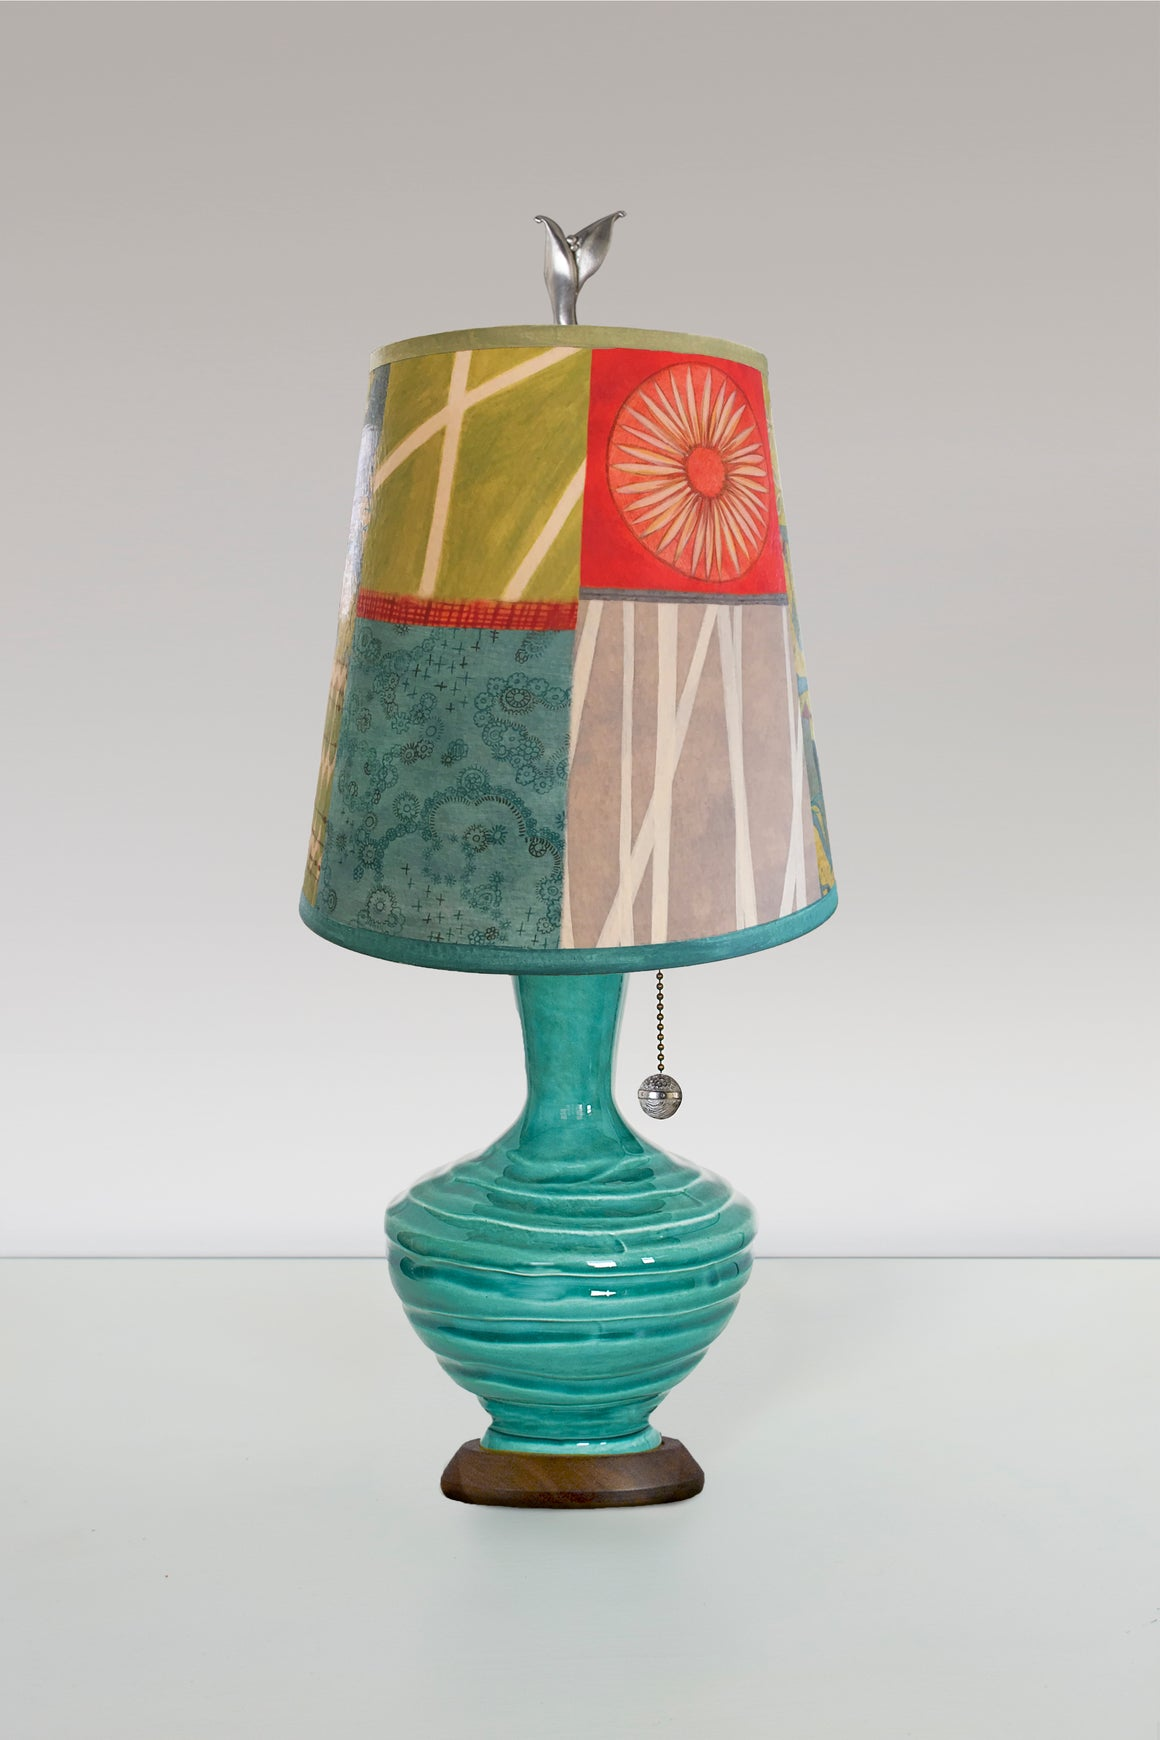 Ceramic Table Lamp with Small Drum Shade in Zest